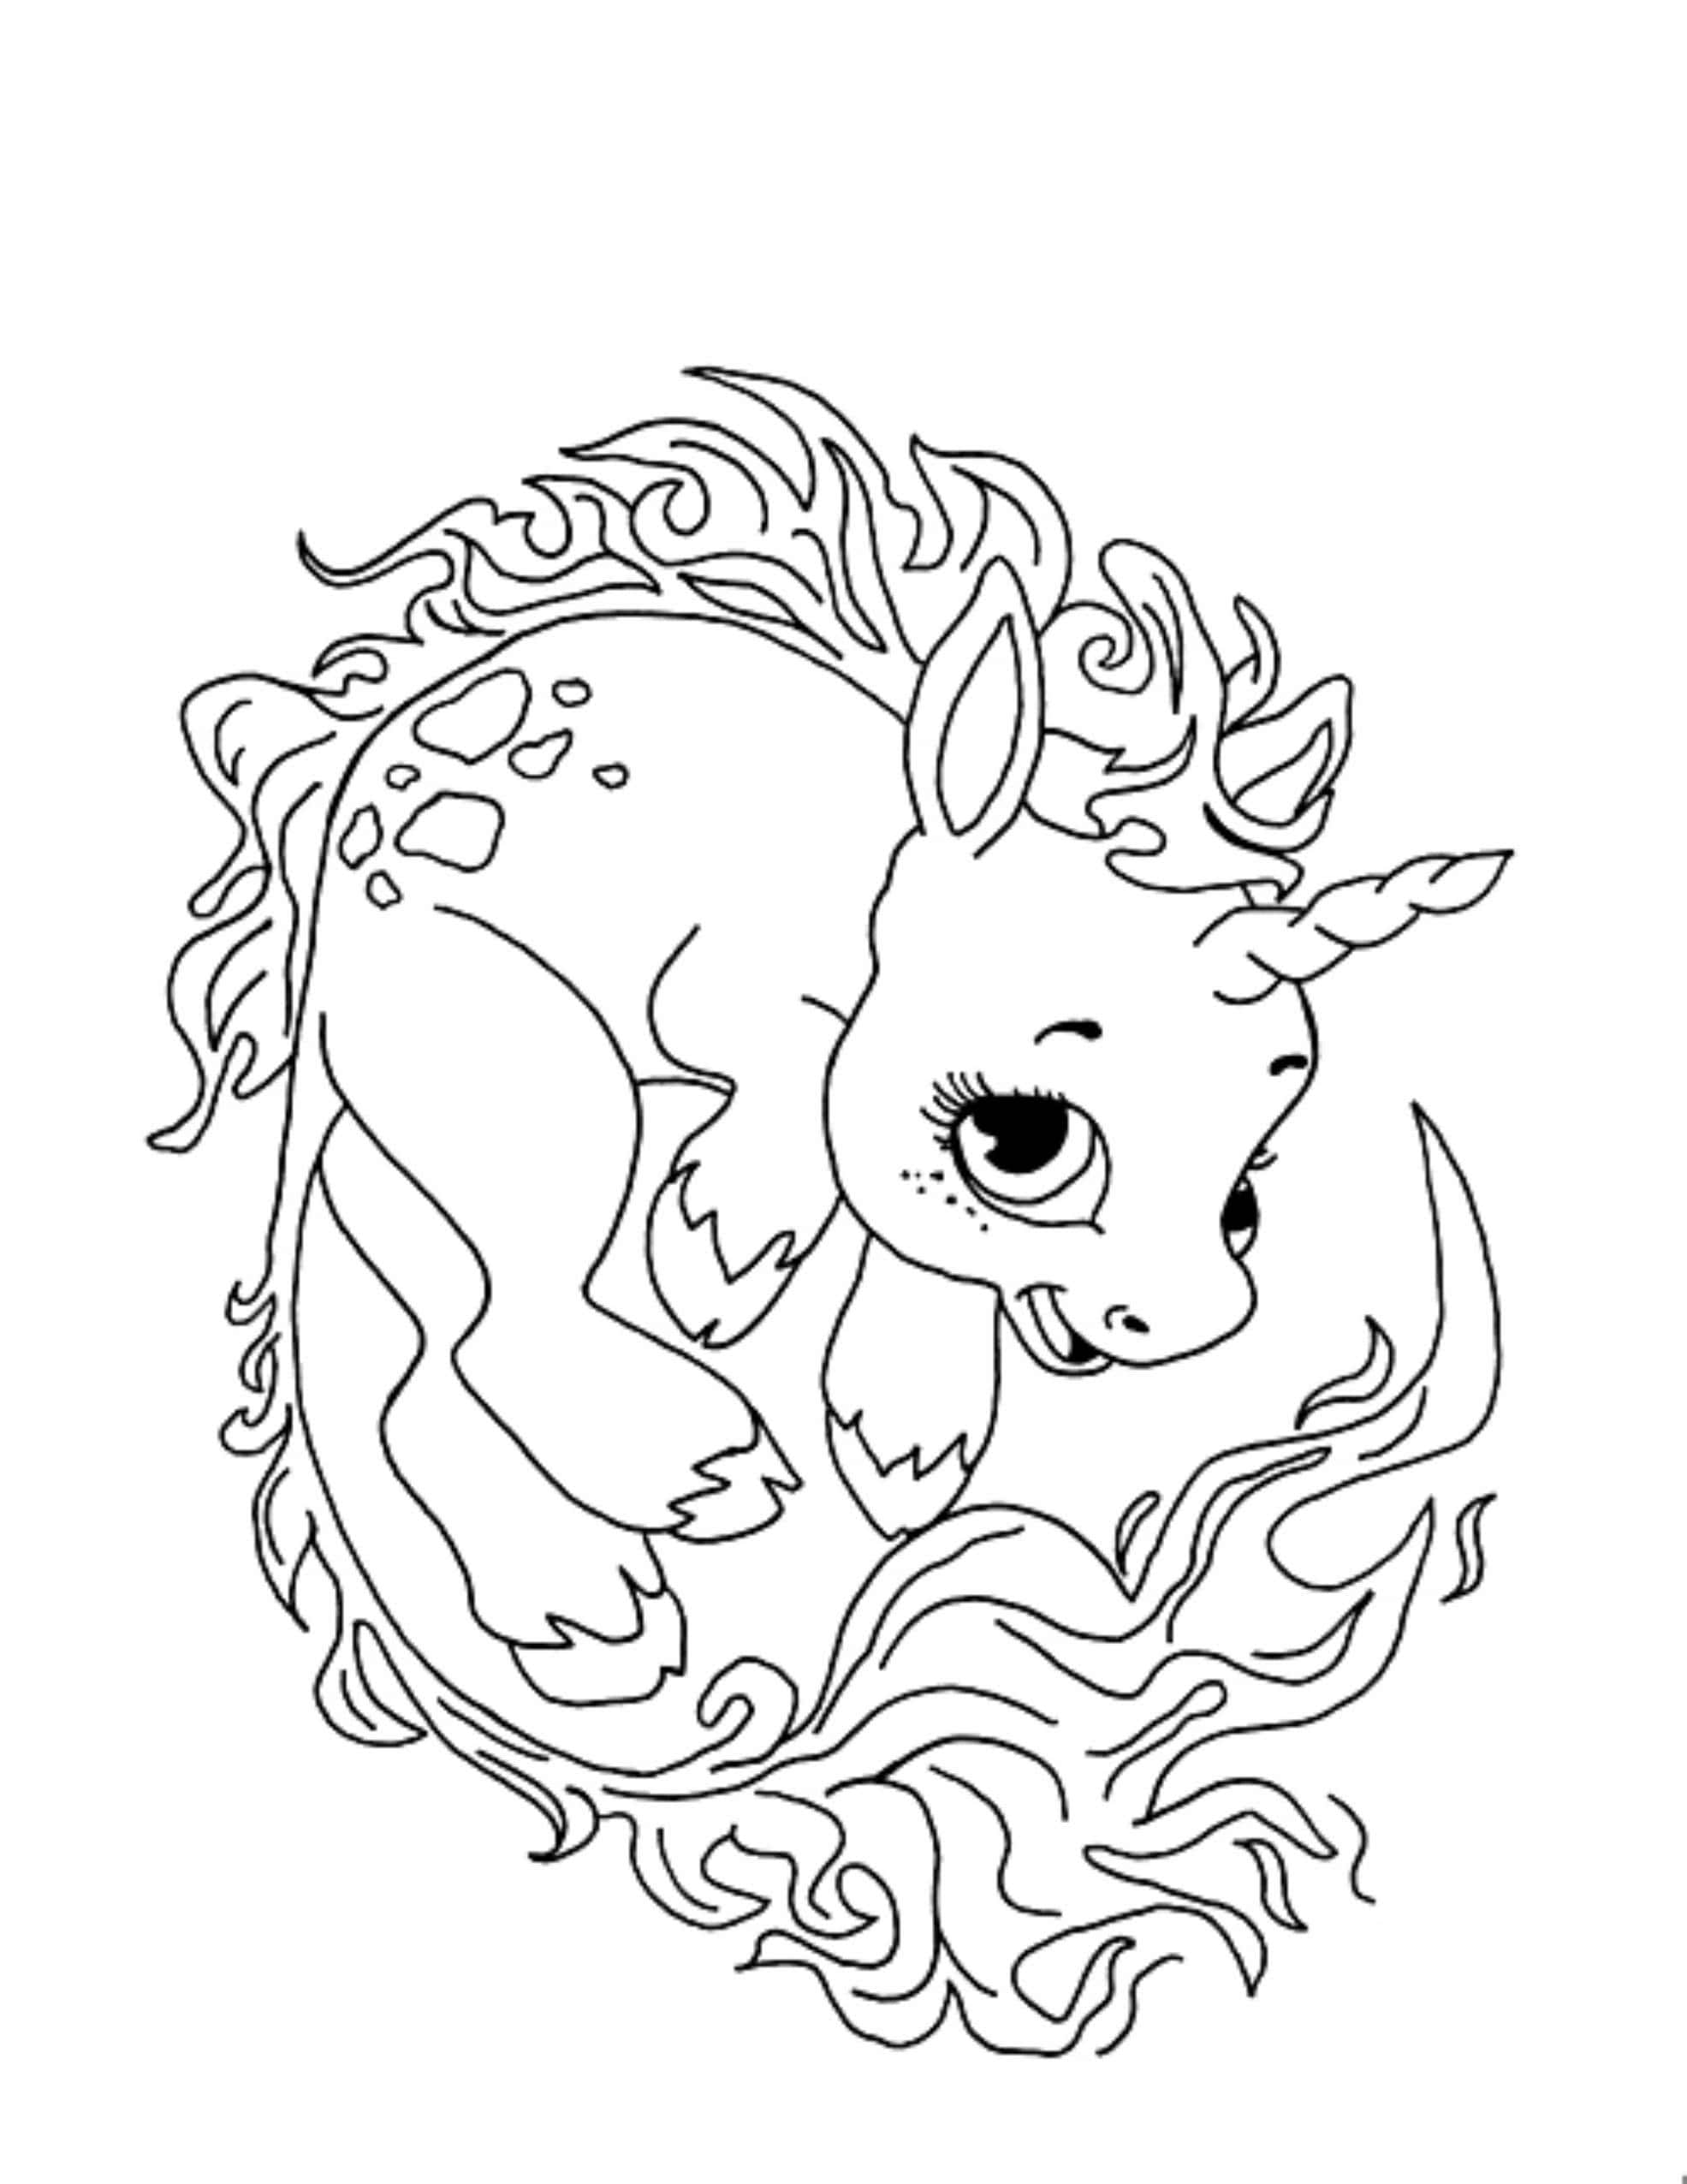 Unicorn Coloring Pages, 100 Black and White Pictures. Print ThemOnline!